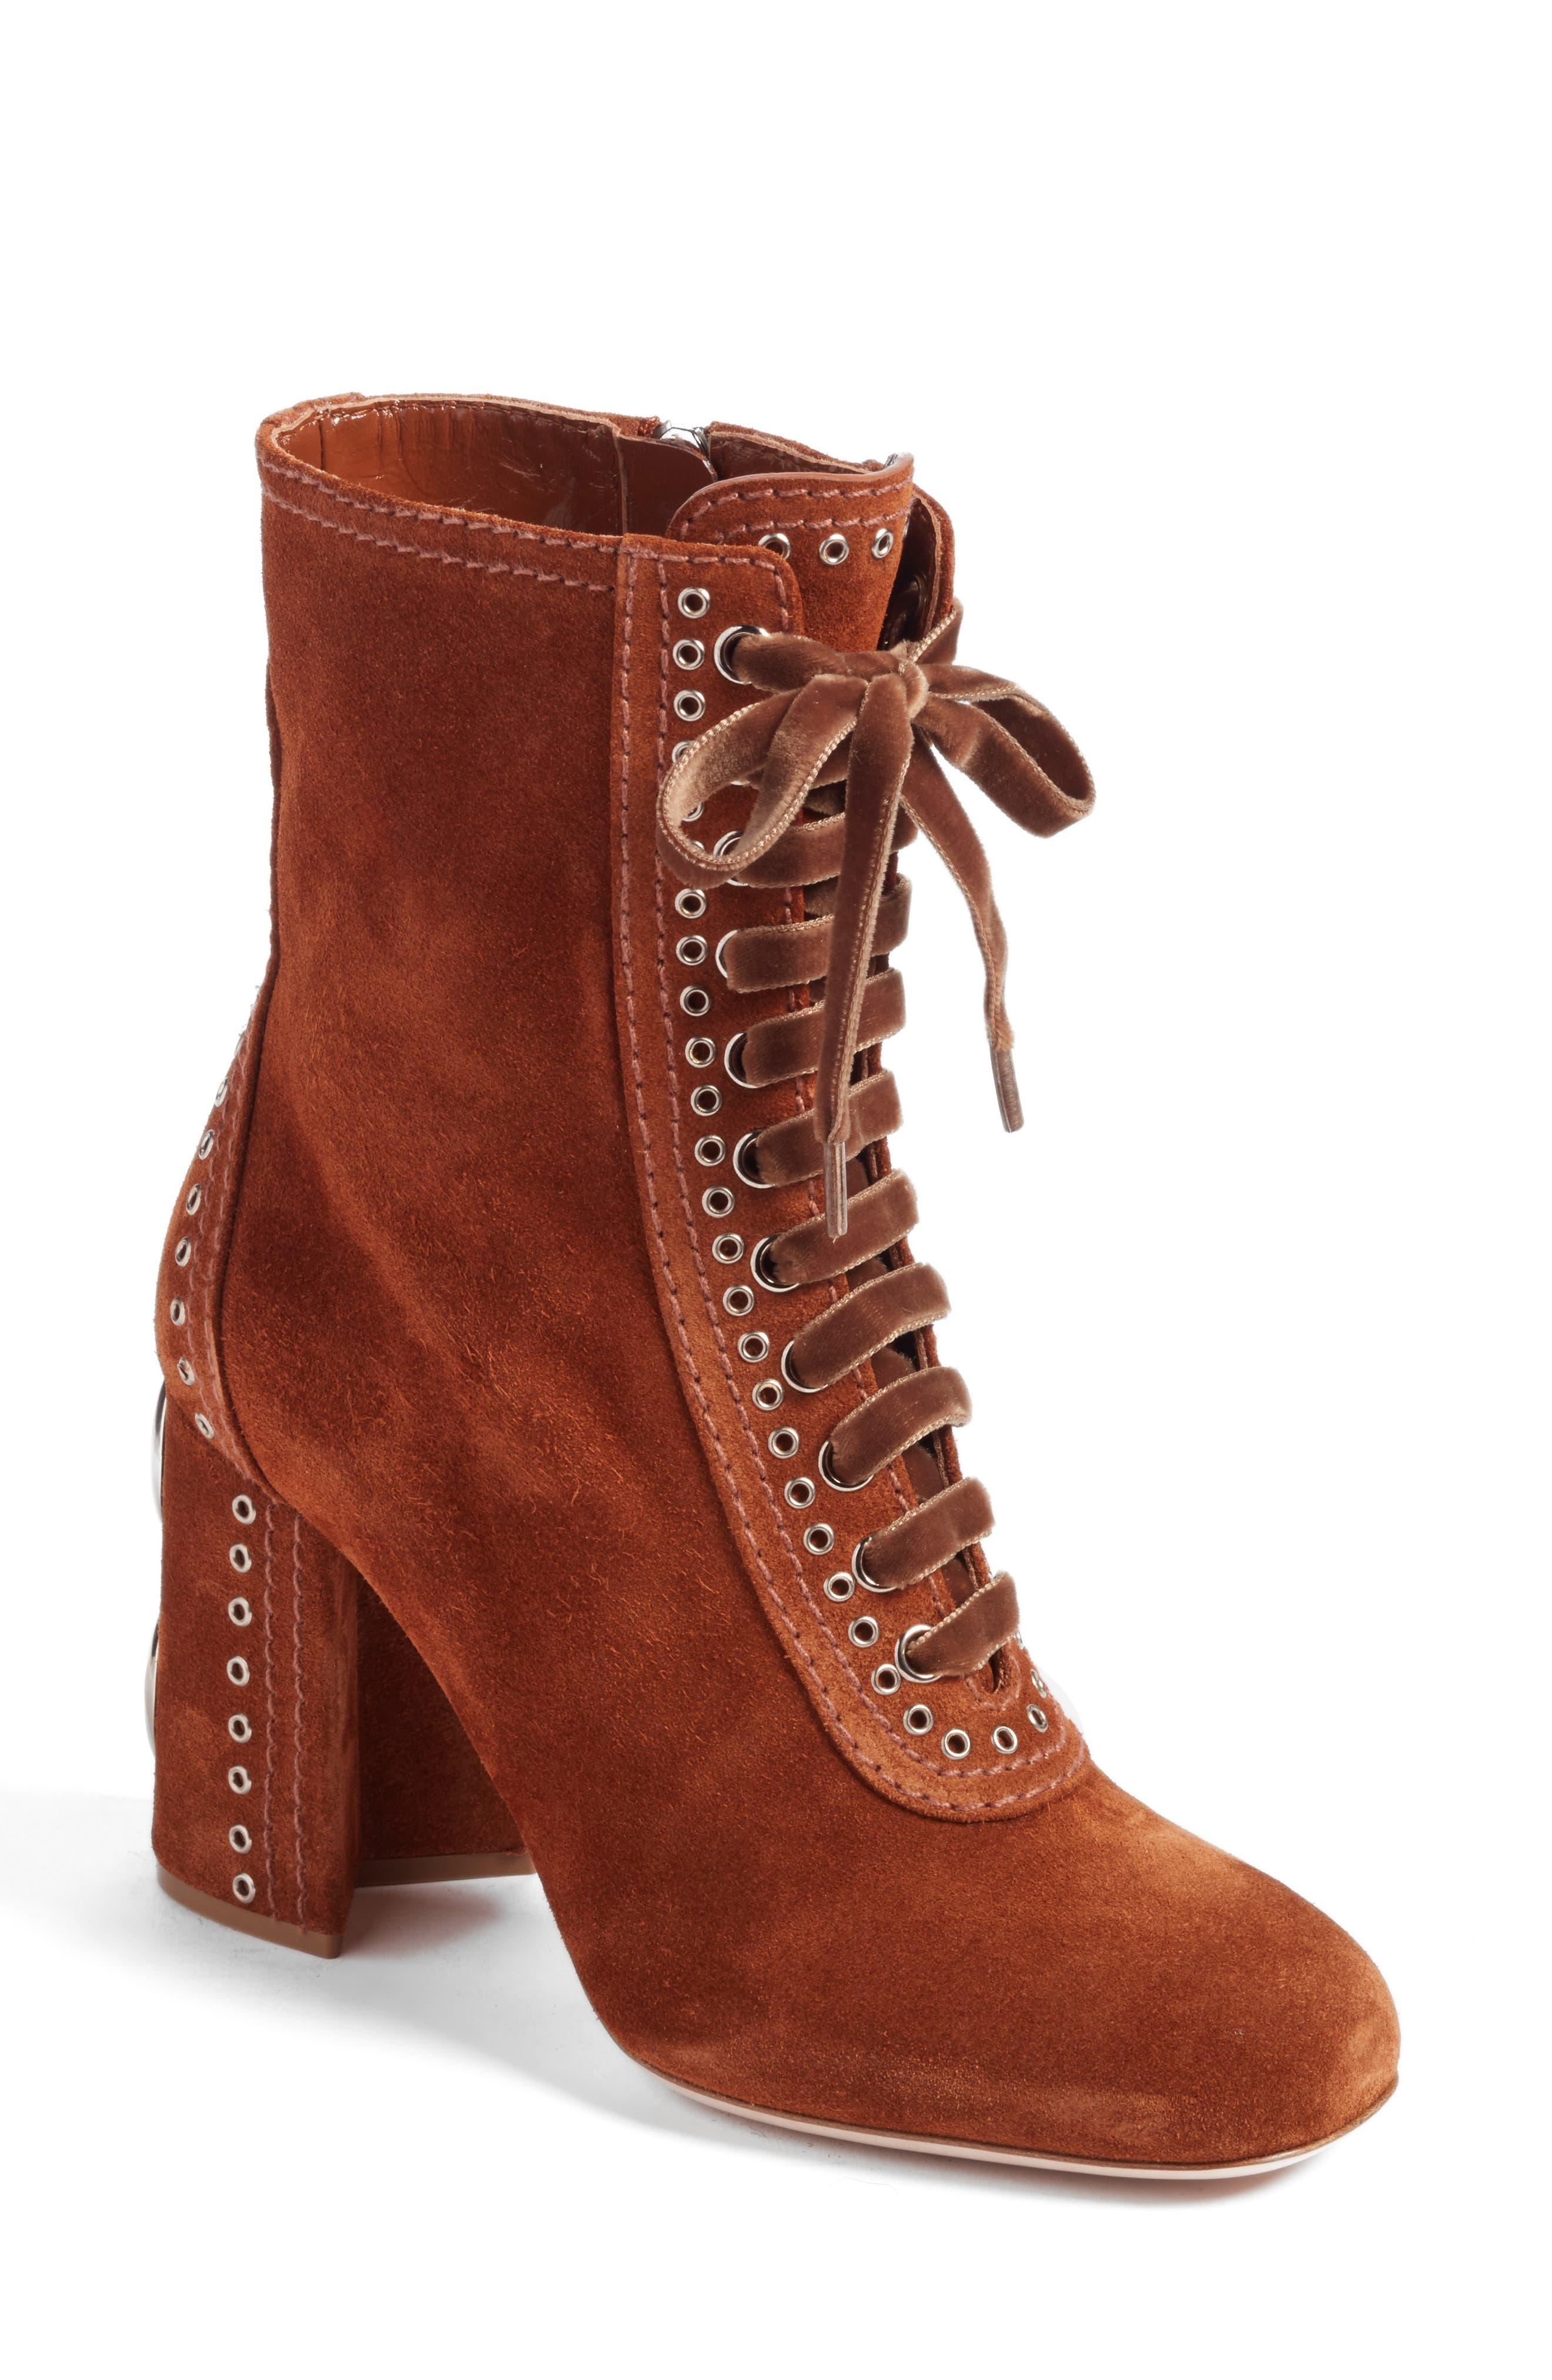 Miu Miu Lace-Up Bootie (Women)